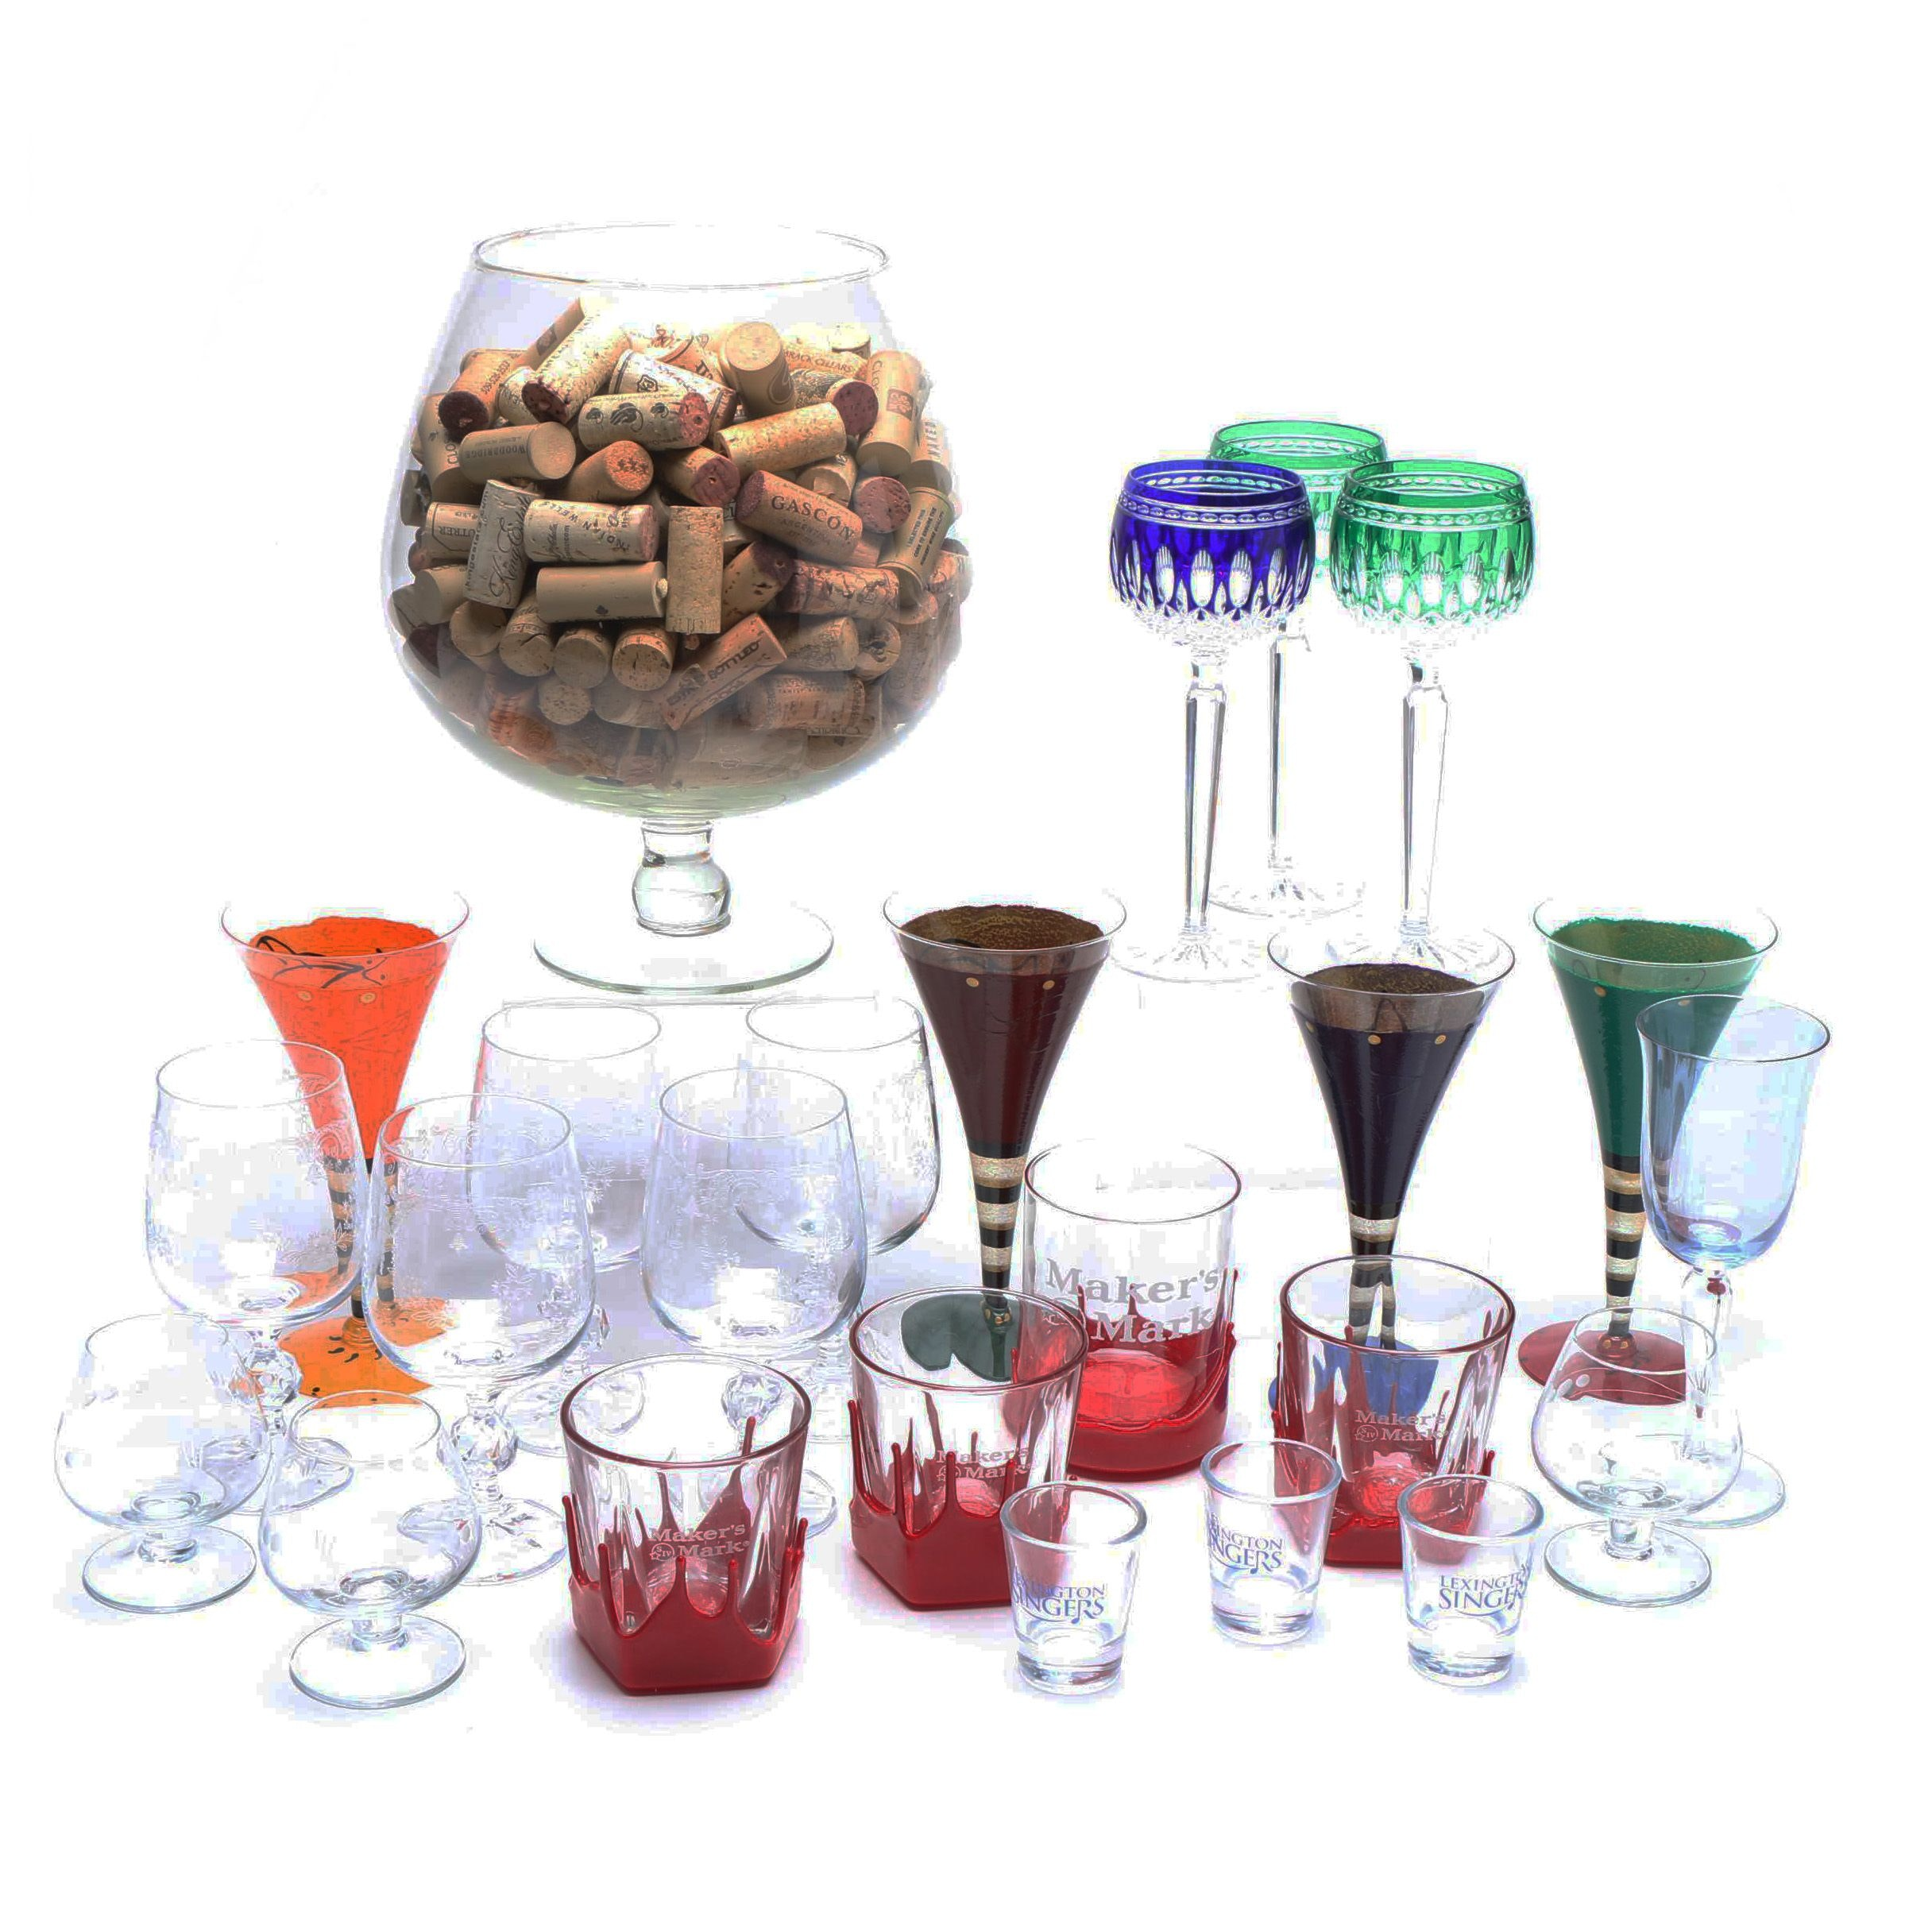 Assorted Glassware and Drinkware Including Waterford